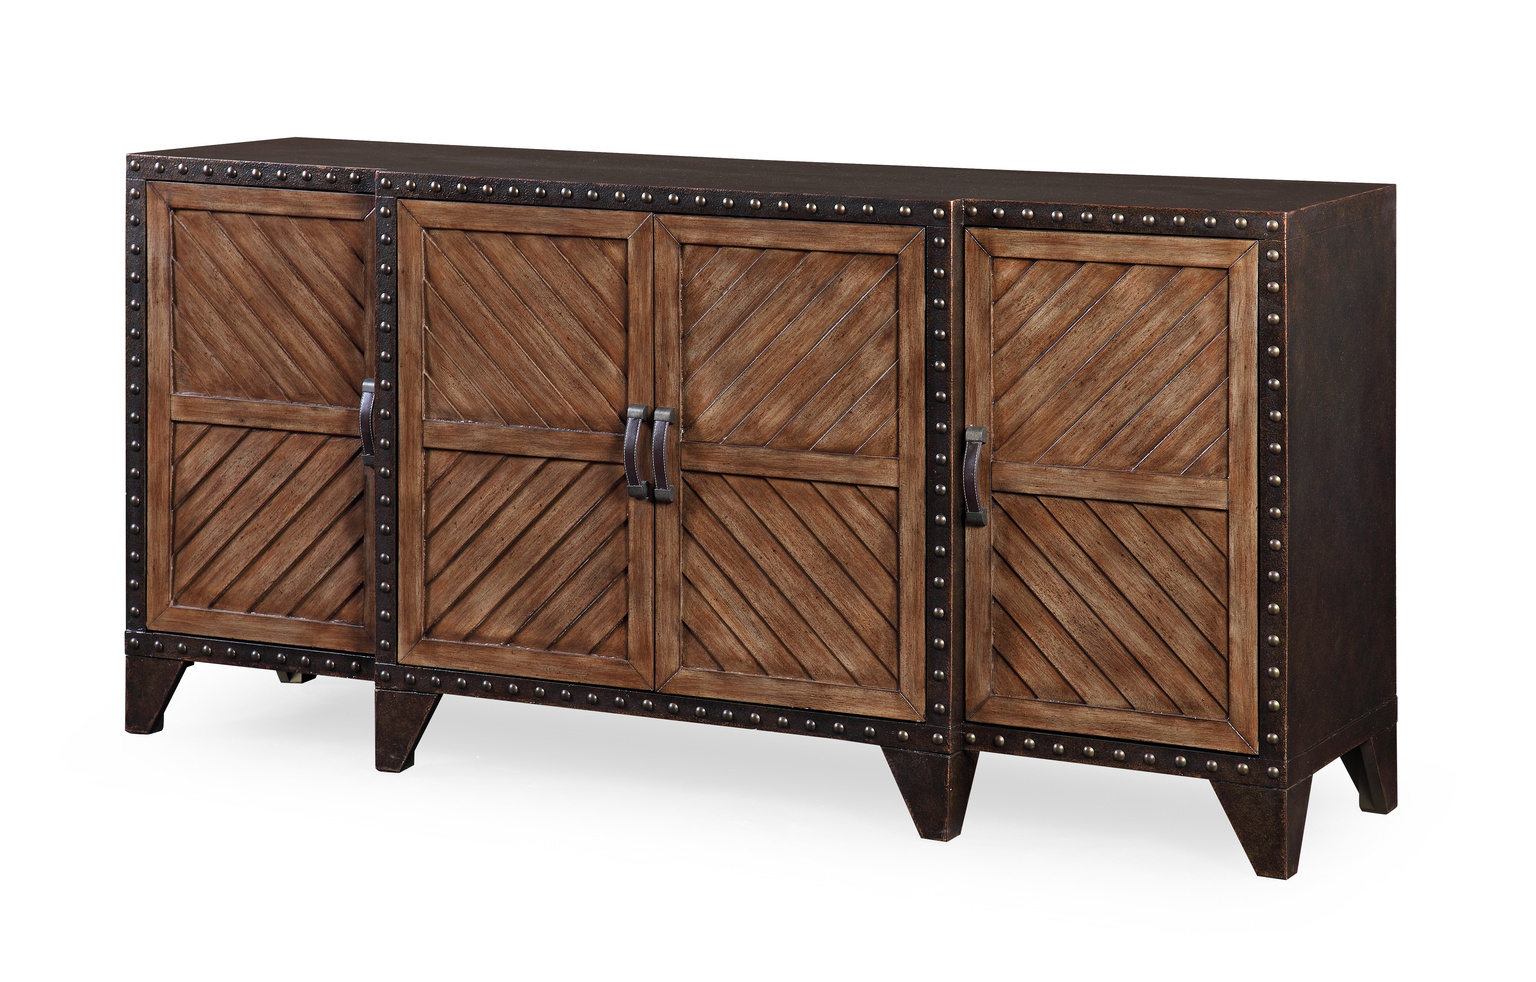 Widely Used Sideboards, Cabinets, Shelving Inside Reclaimed Pine & Iron 4 Door Sideboards (Gallery 17 of 20)